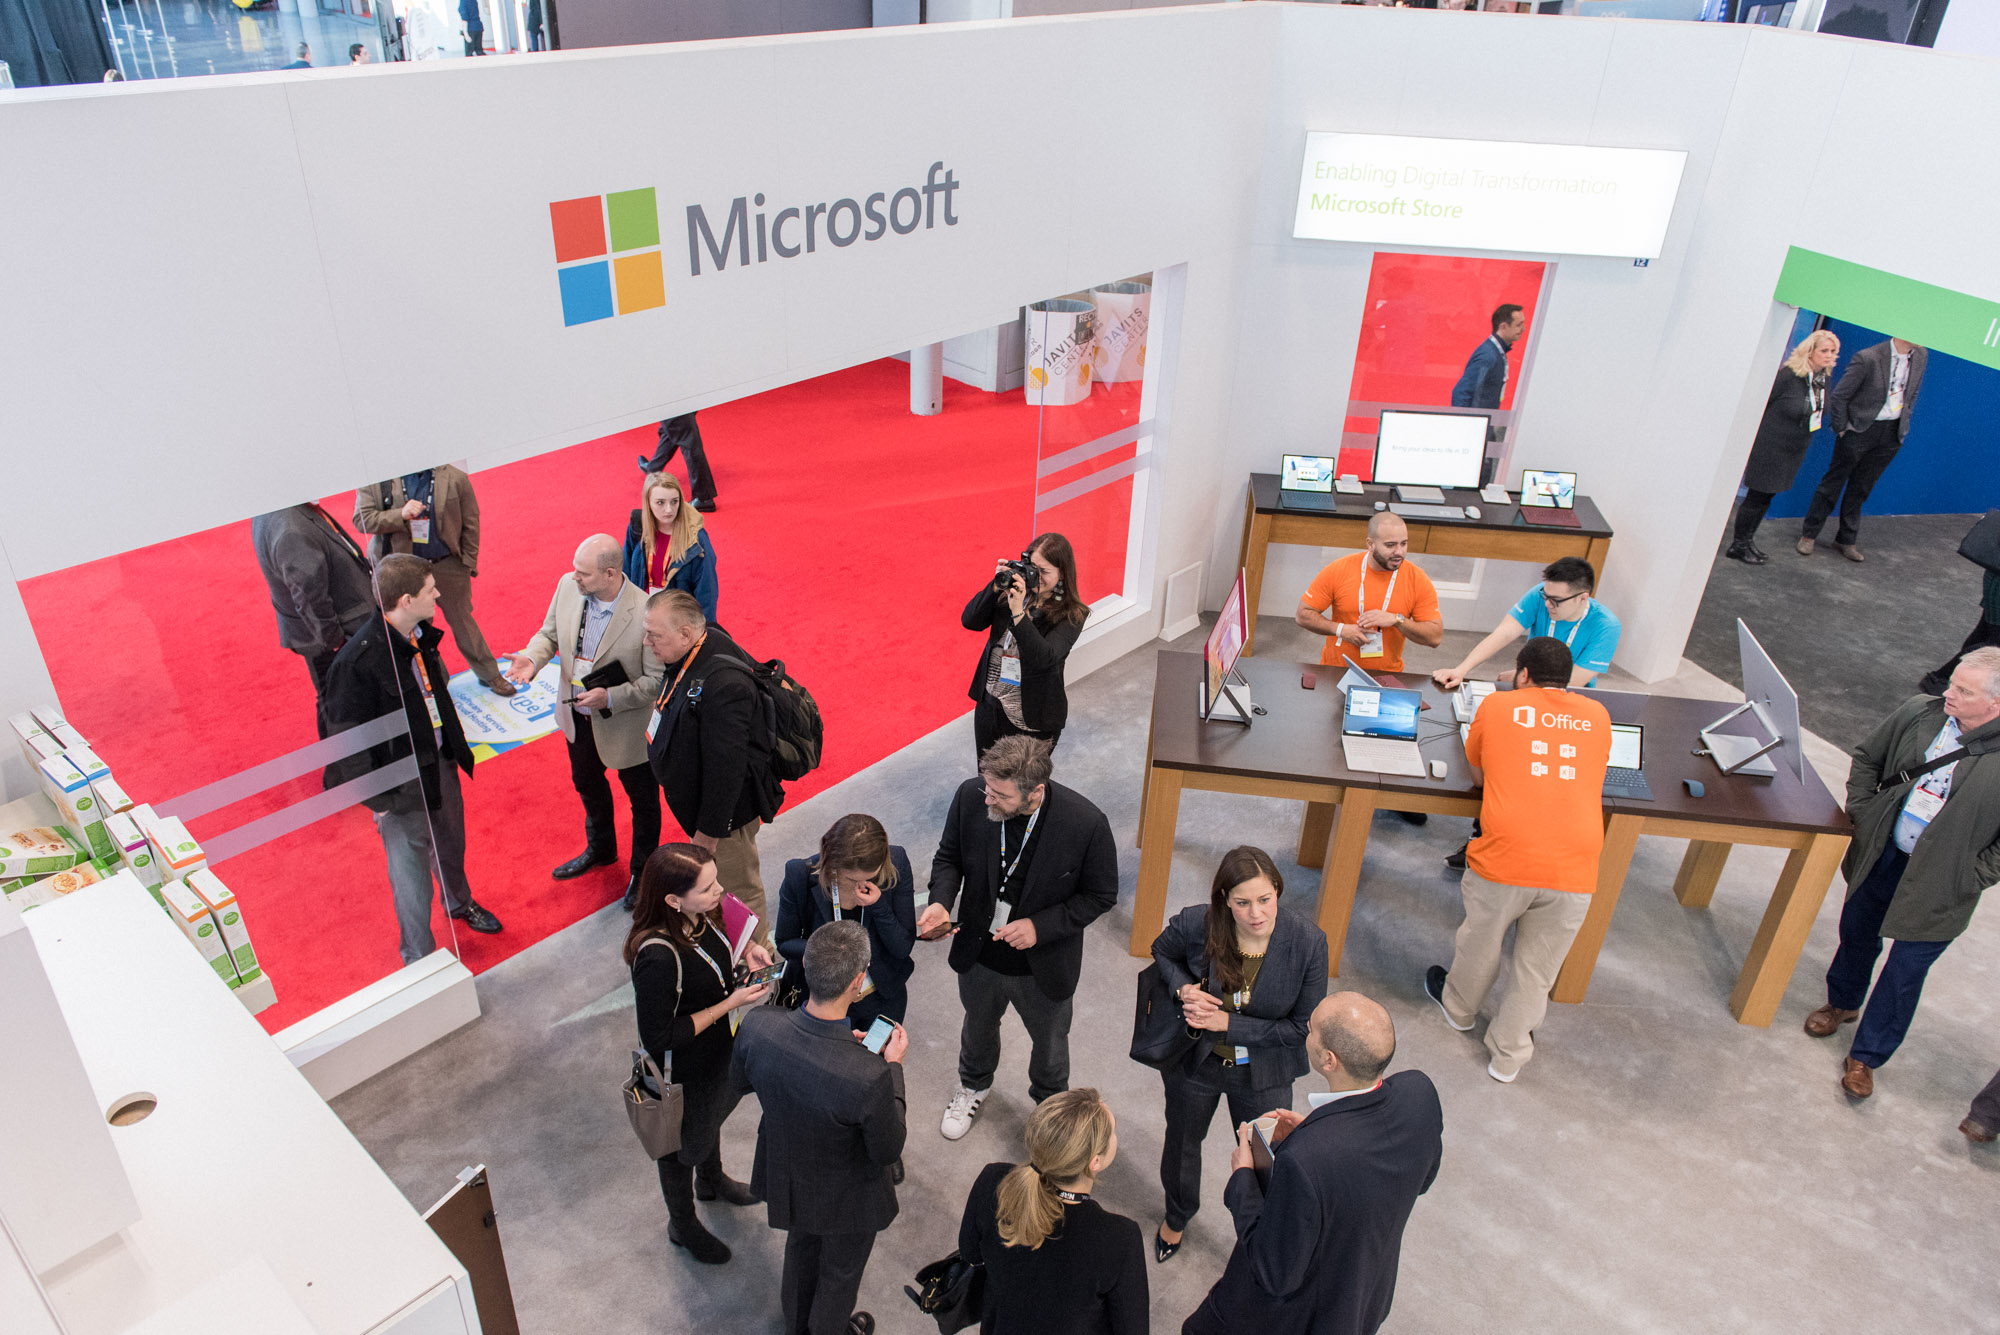 Microsoft Convention Booth Photographer / Photography